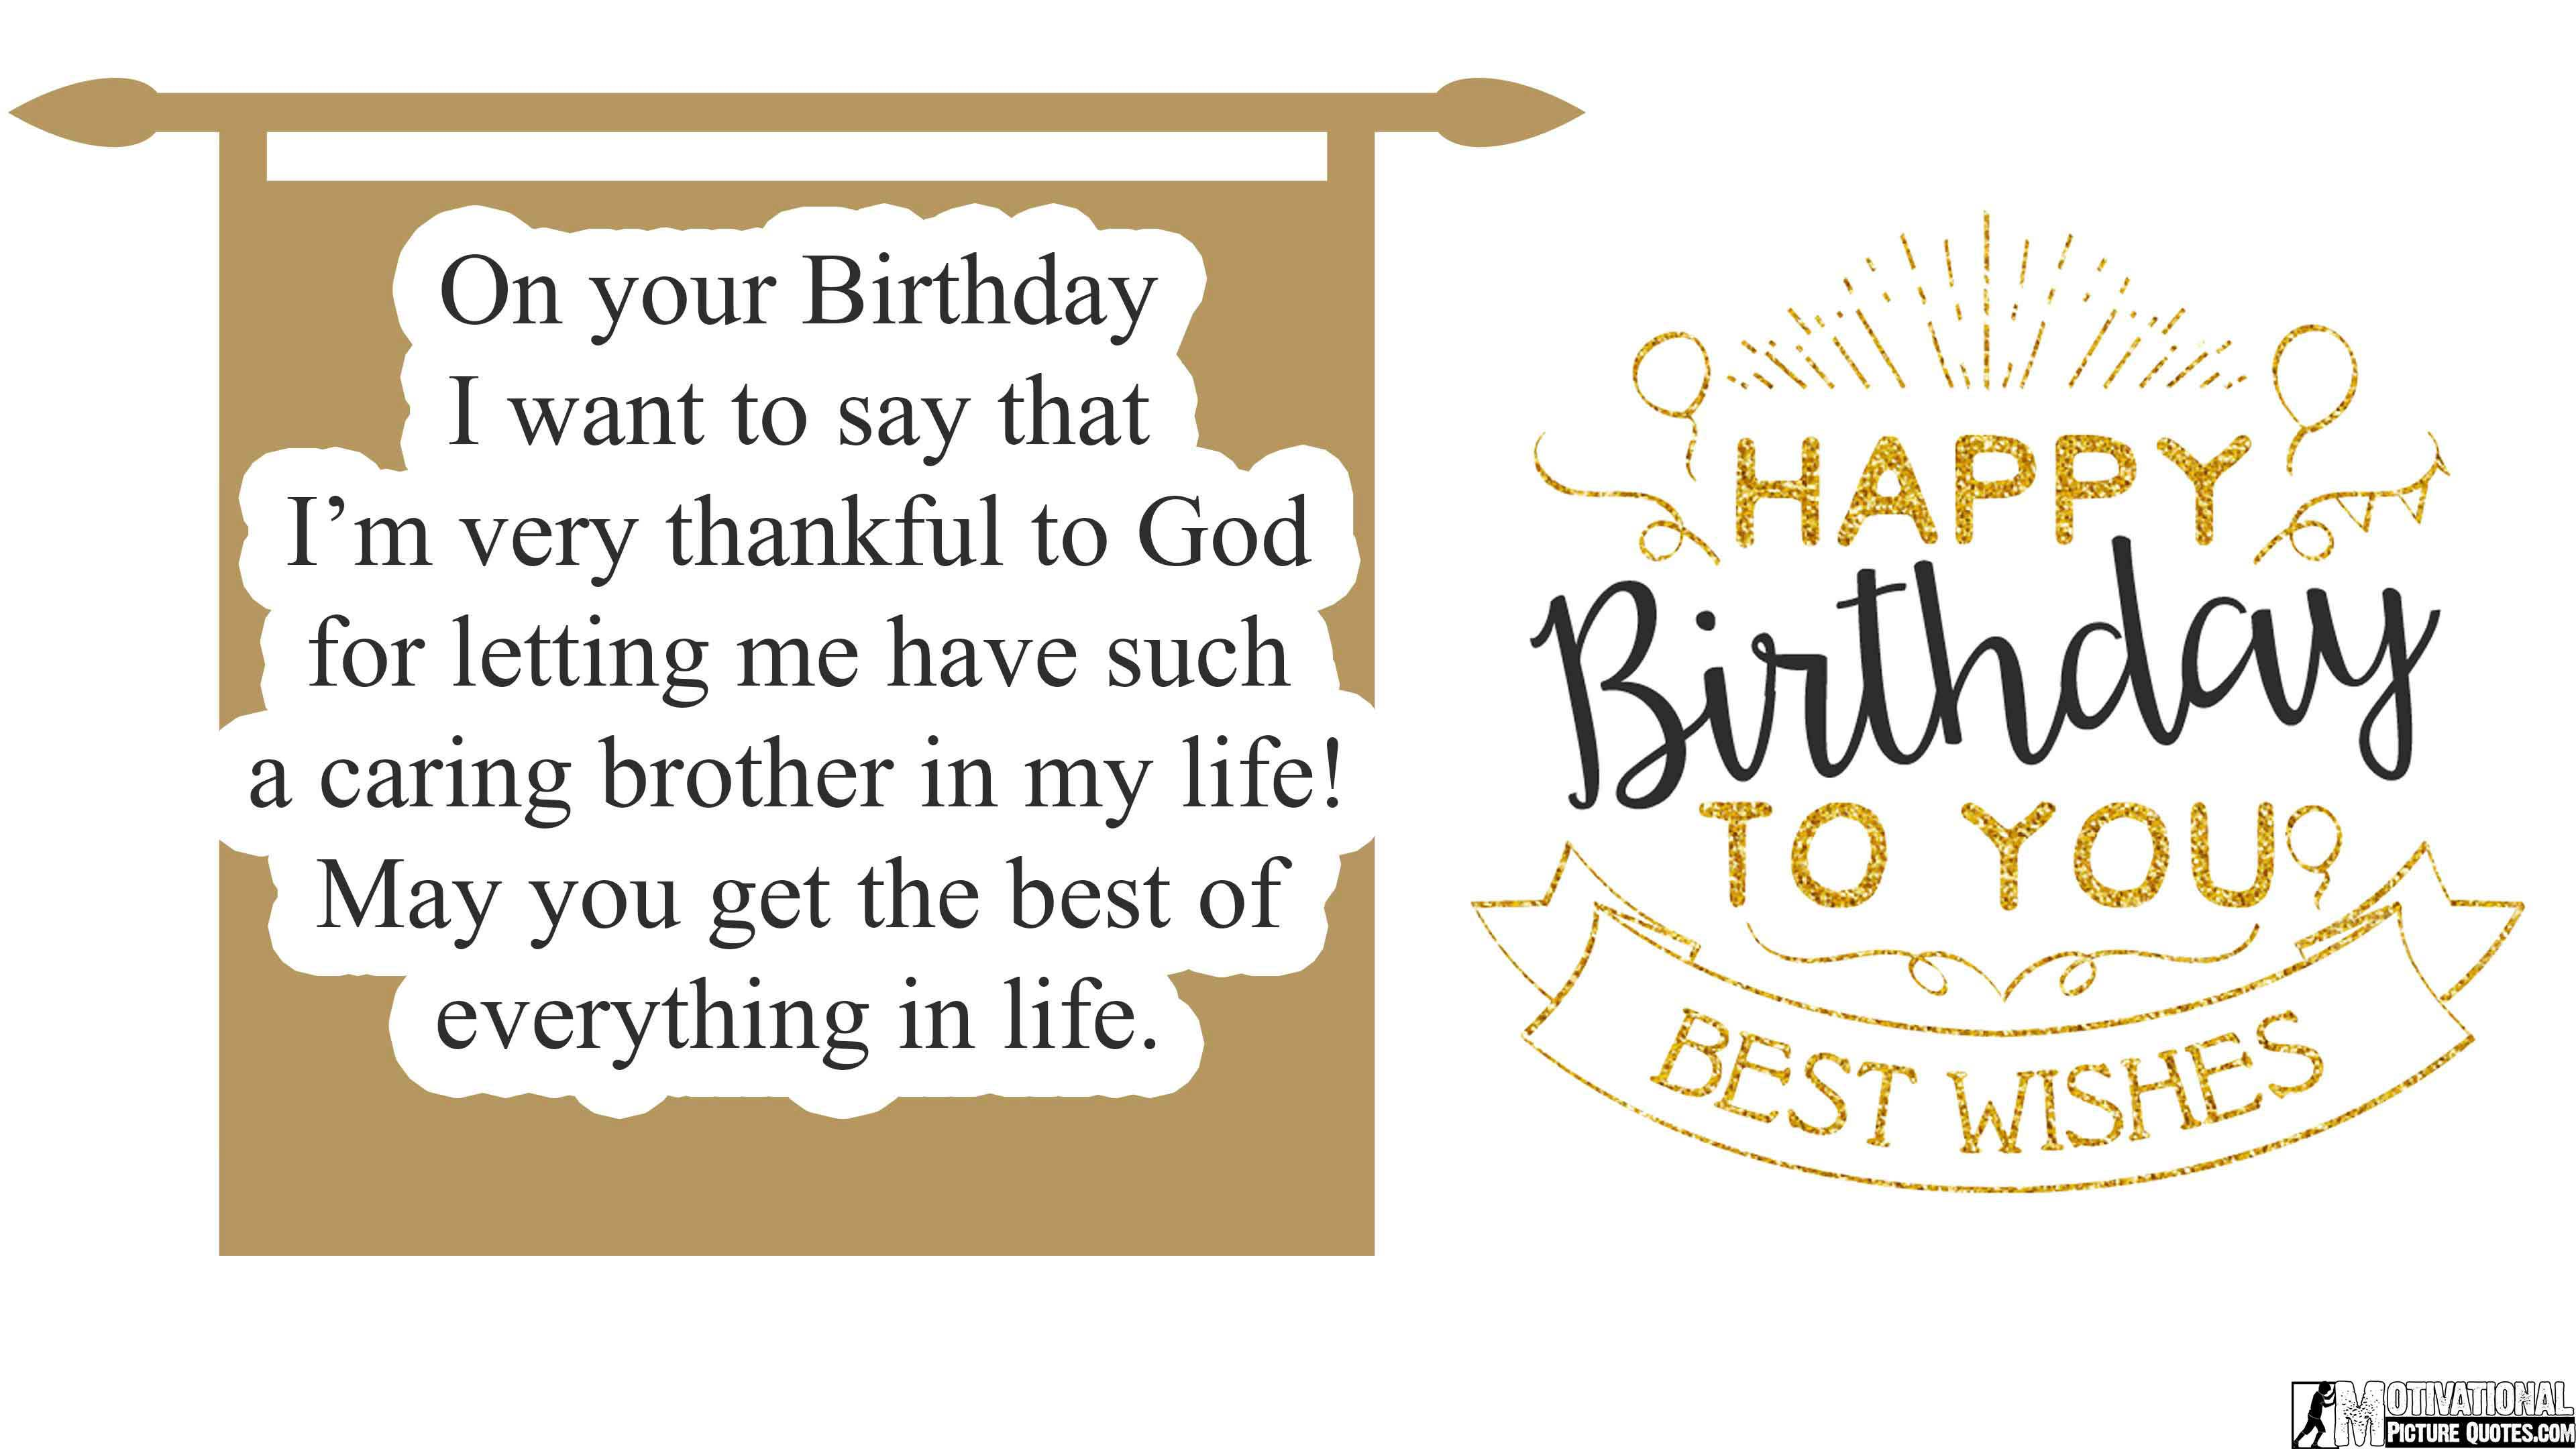 Quotes About Loving Your Brother 35 Inspirational Birthday Quotes Images  Insbright